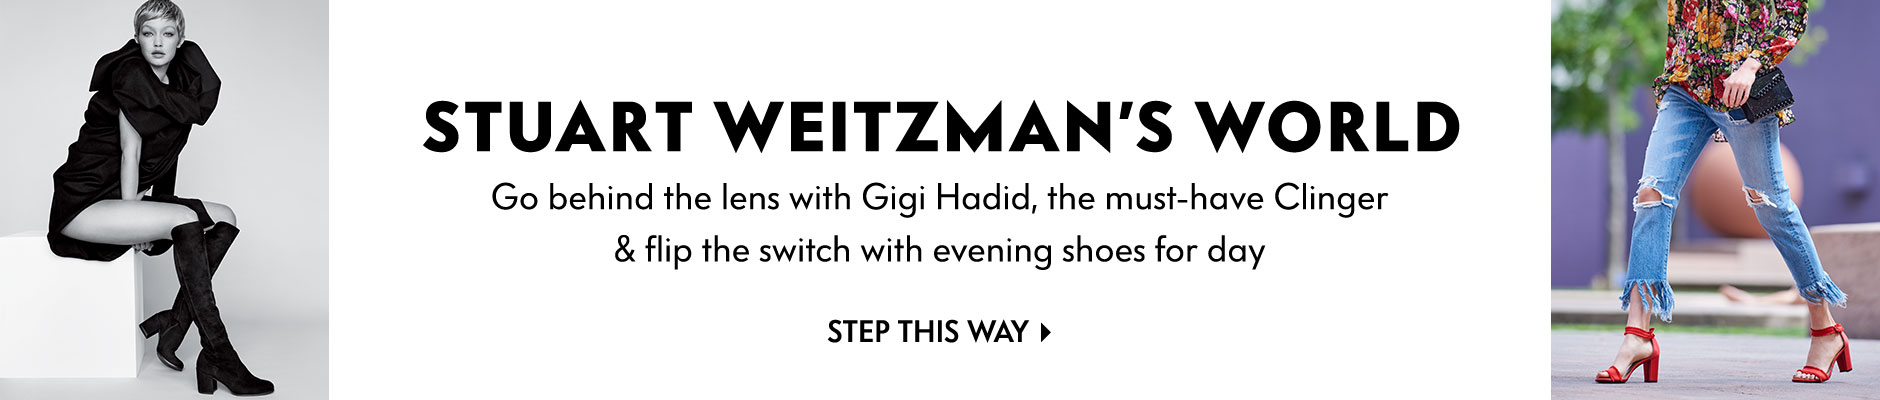 Stuart Weitzman's World - Go behind the lens with Gigi Hadid, the must-have clinger & flip the switch with evening shoes for day - step this way